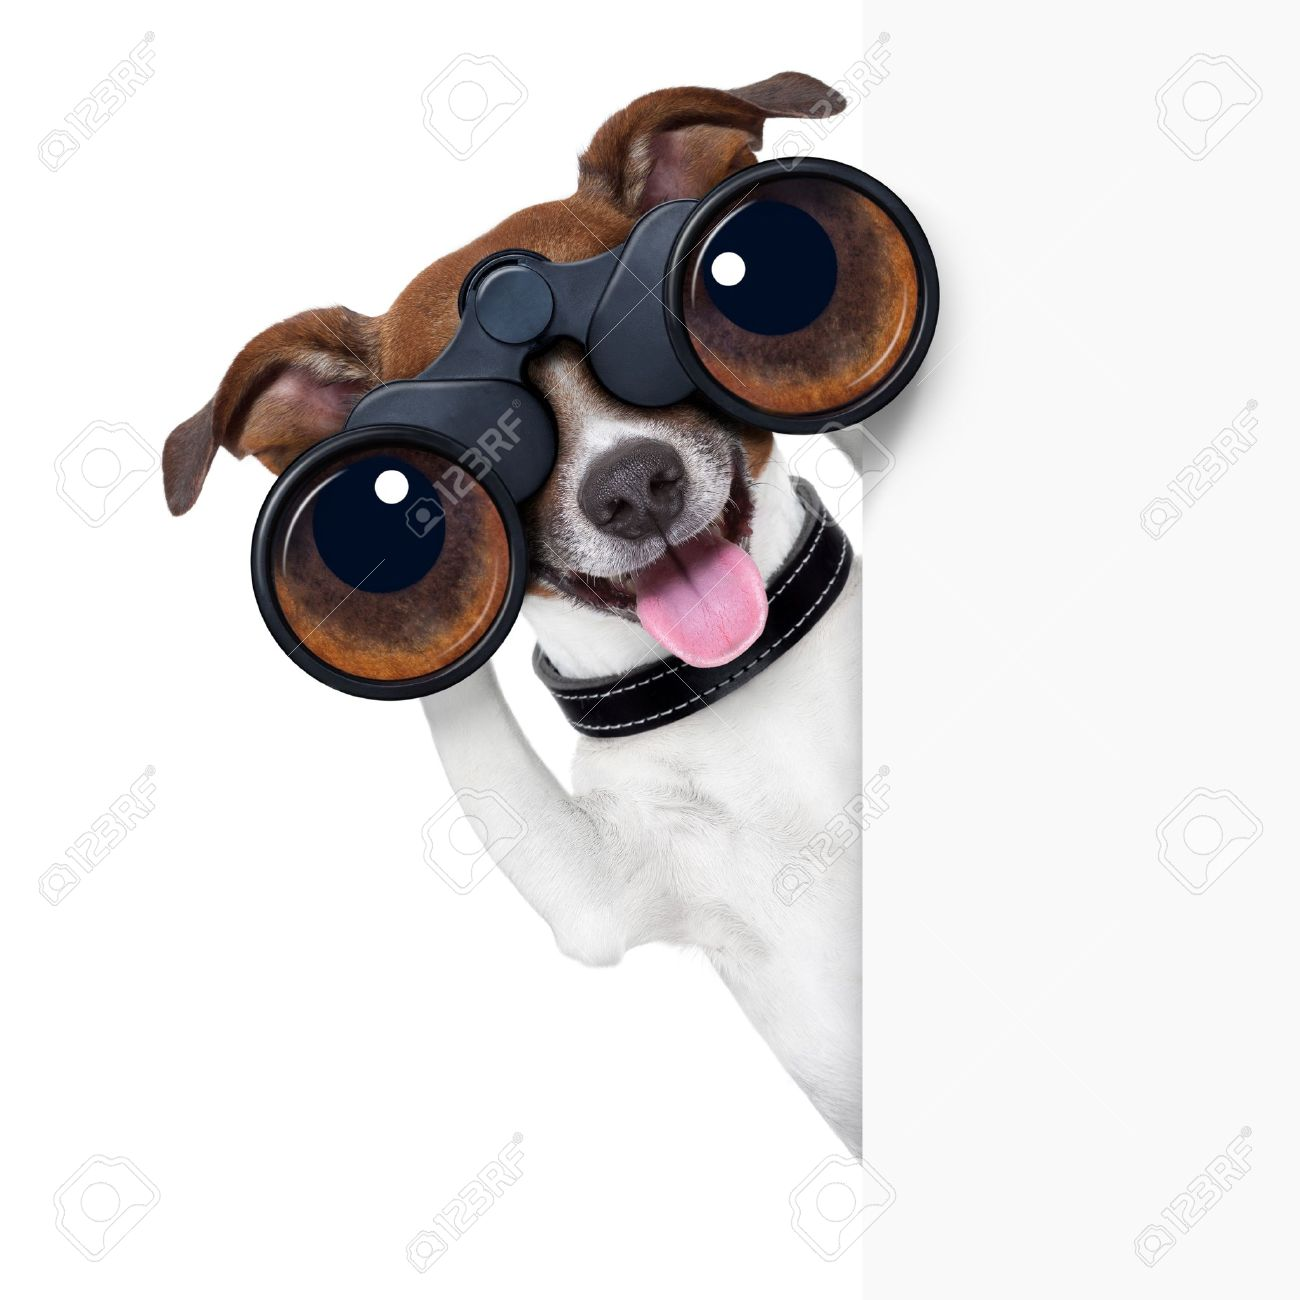 binoculars dog searching, looking and observing - 21377320